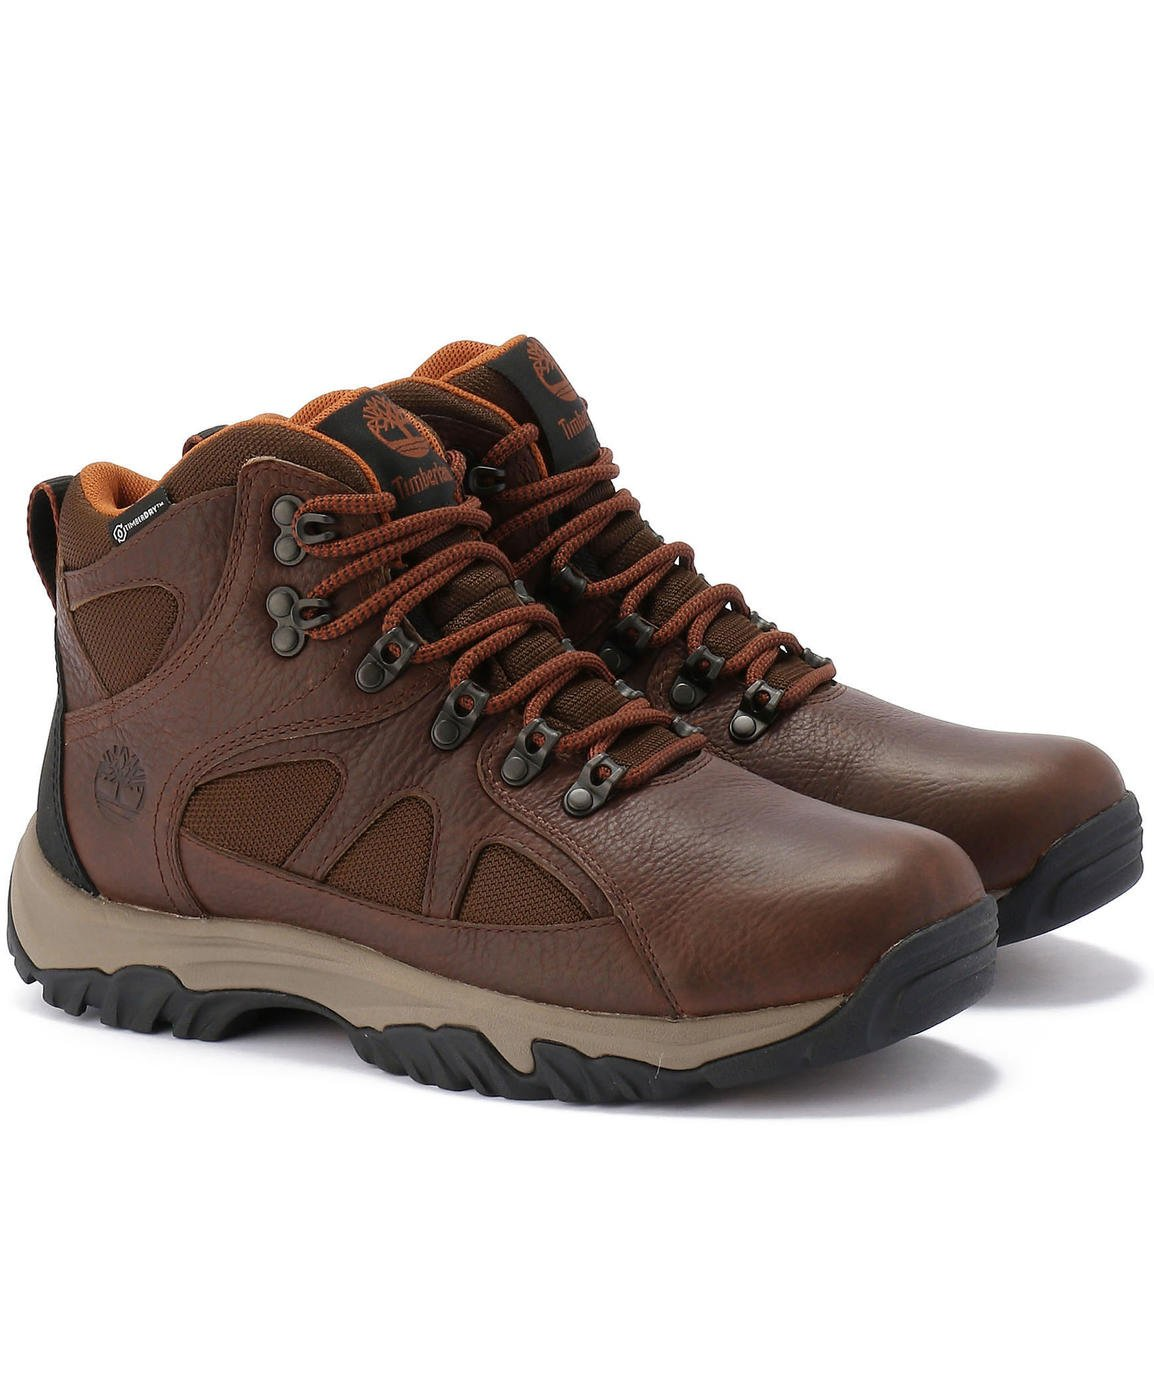 Timberland CA1AOX Men's Bridgeton Mid Waterproof Hiking Boots, Brown, 9 M US